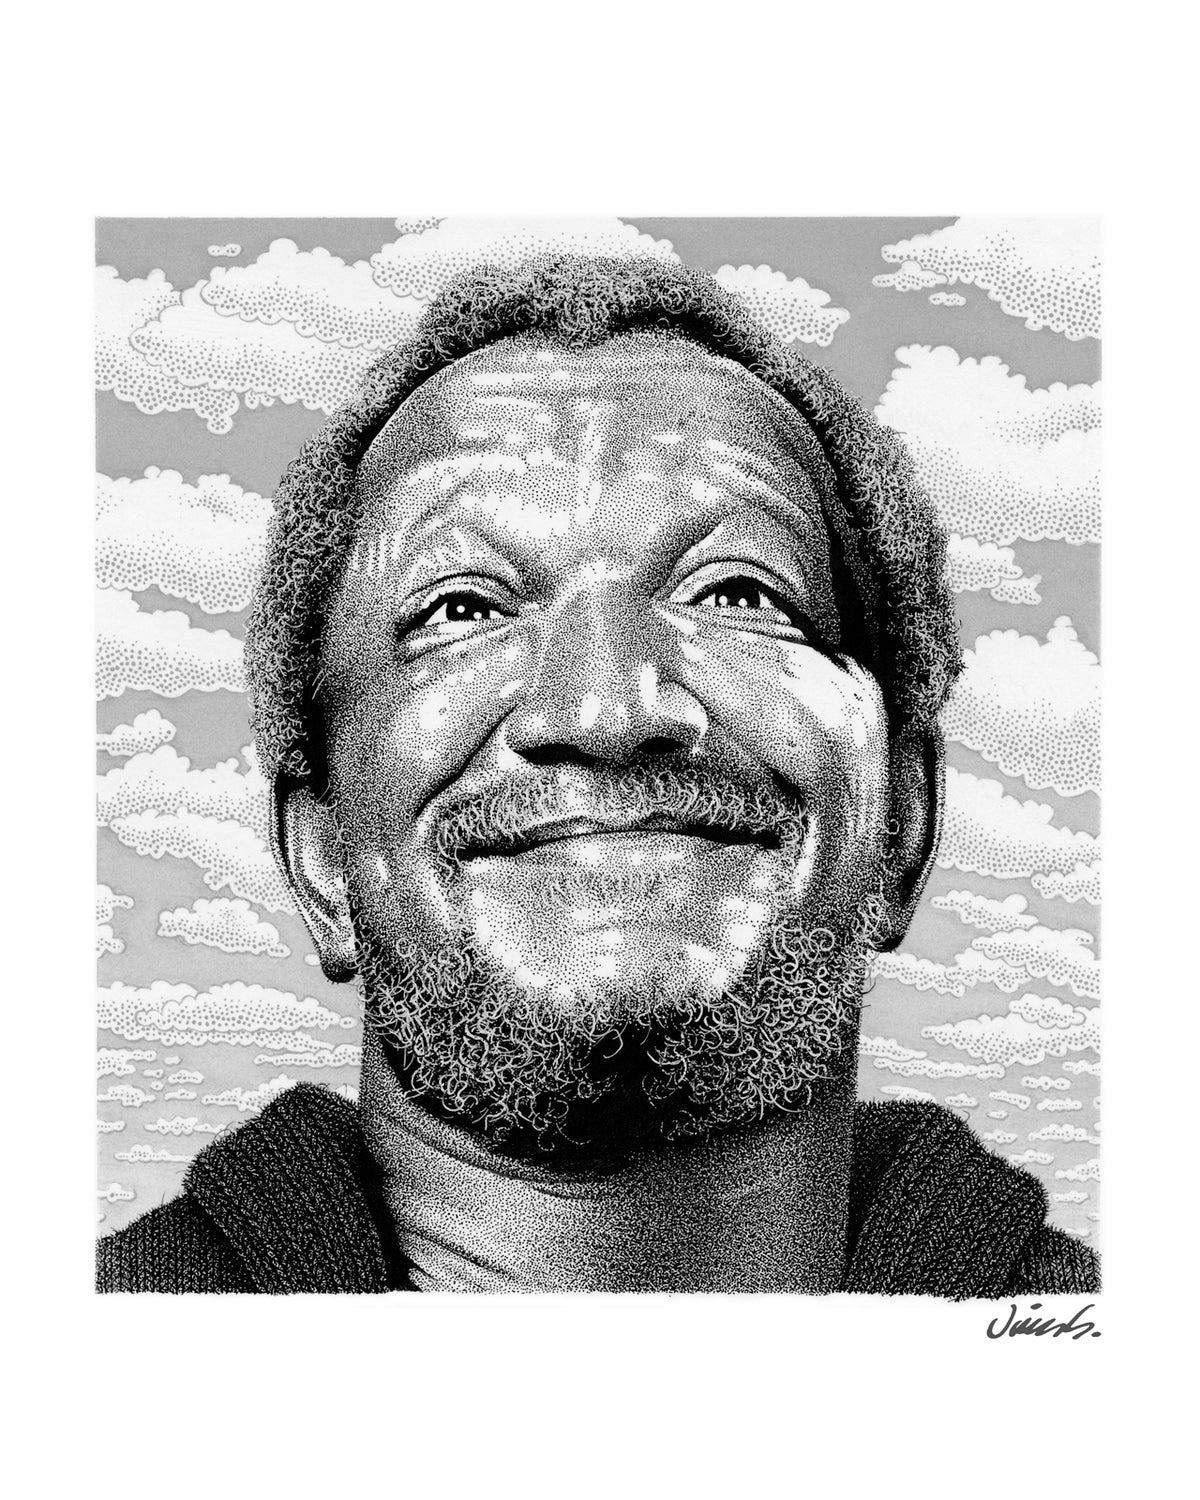 Image of REDD FOXX poster print